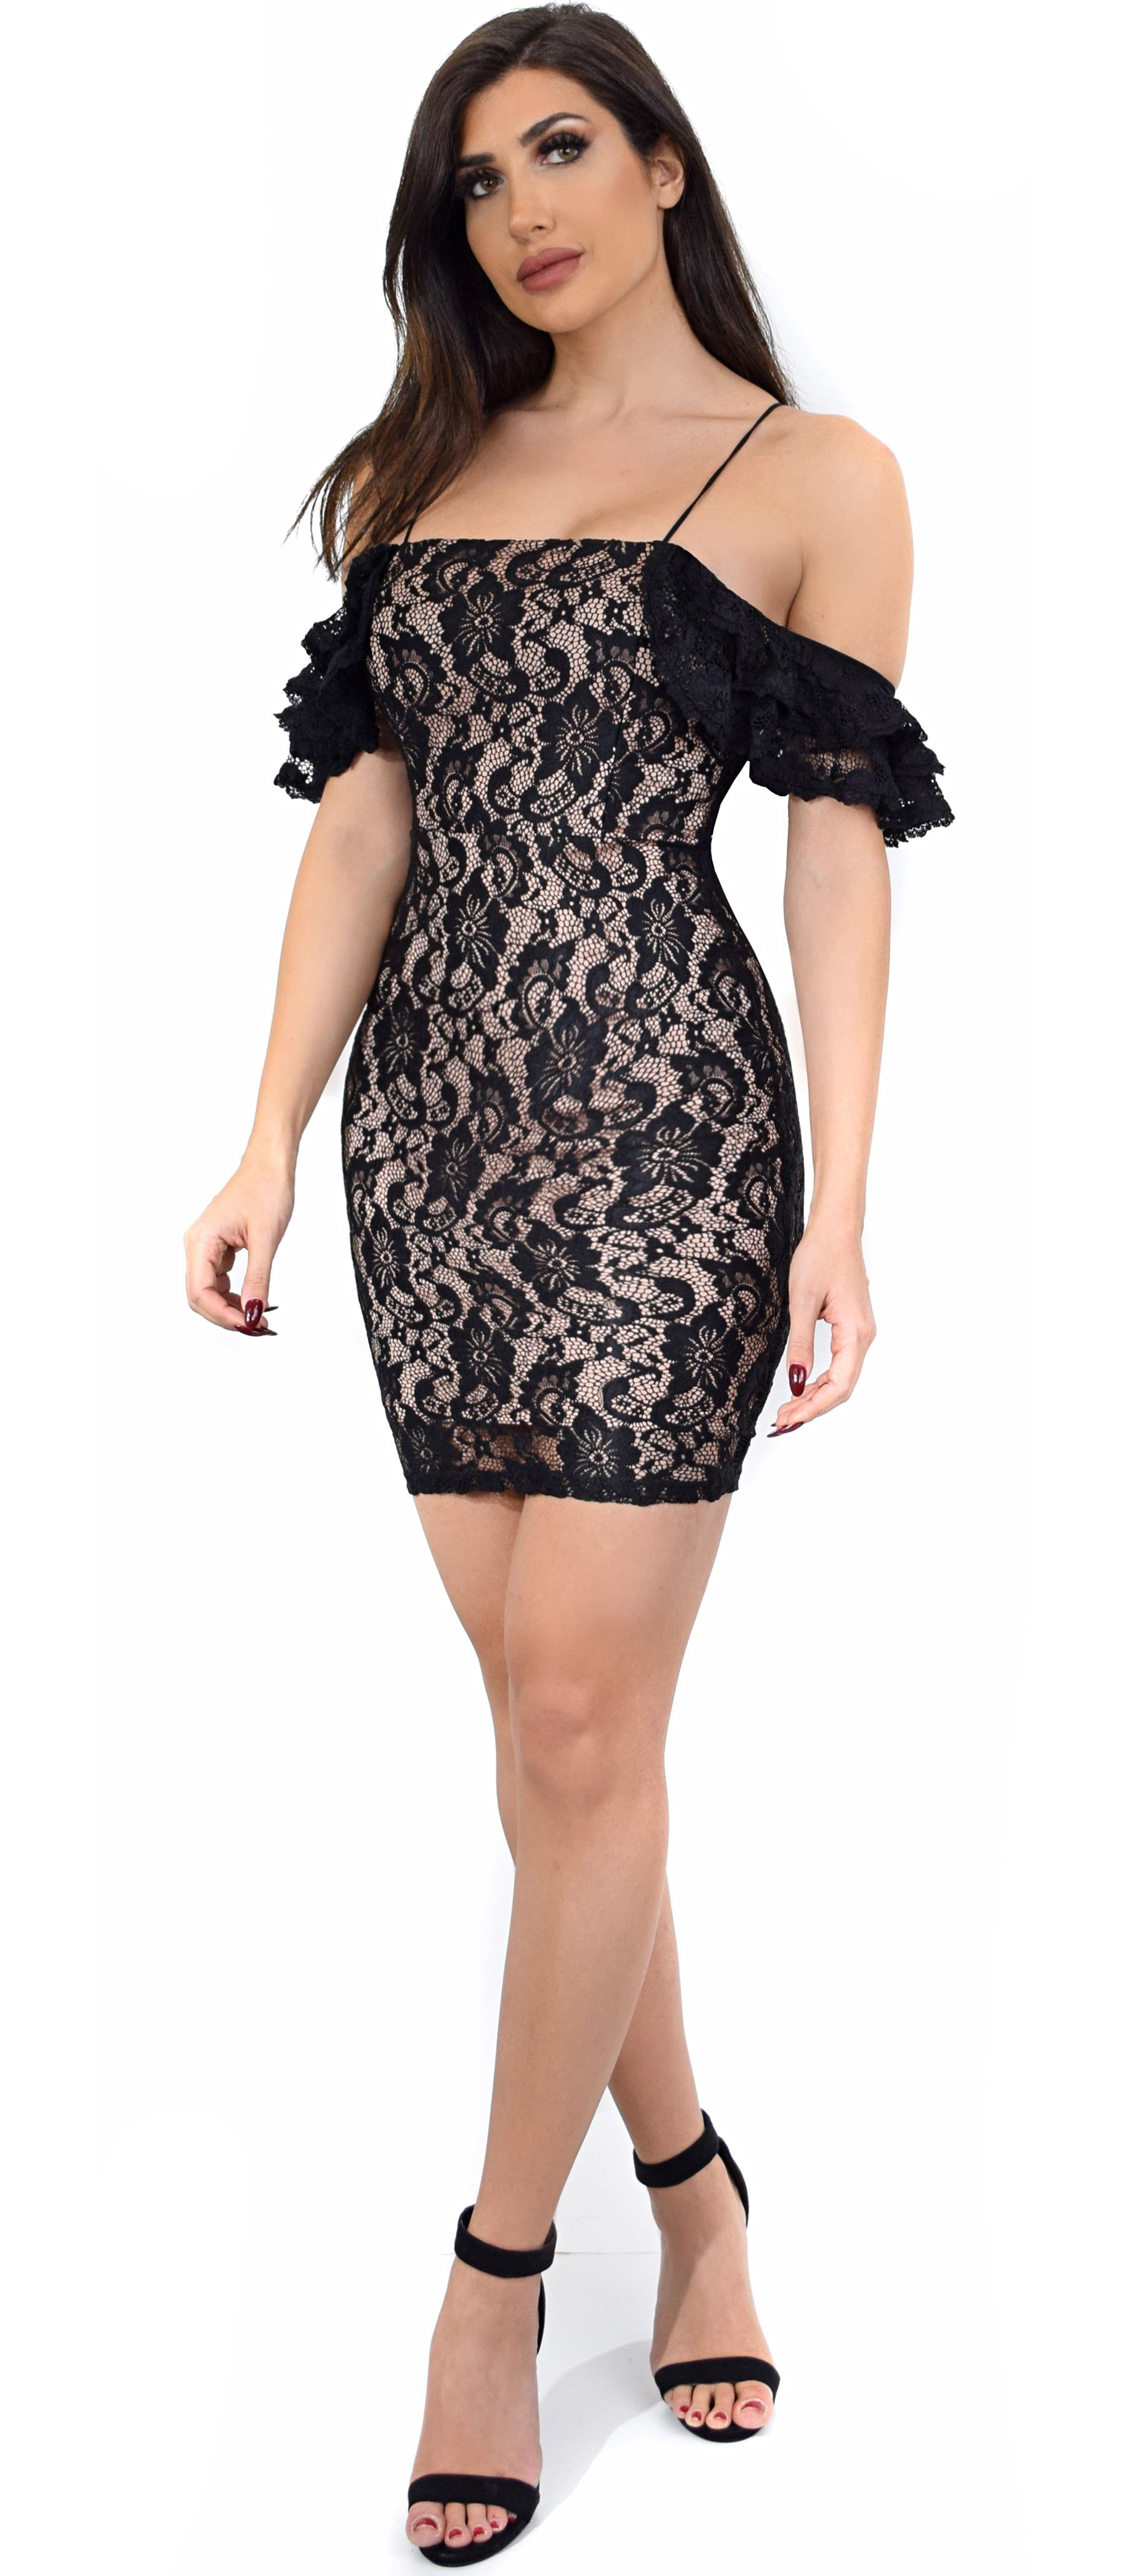 cb5eaef9d4c1 Deena Black Nude Lace Shoulder Ruffle Dress - Emprada